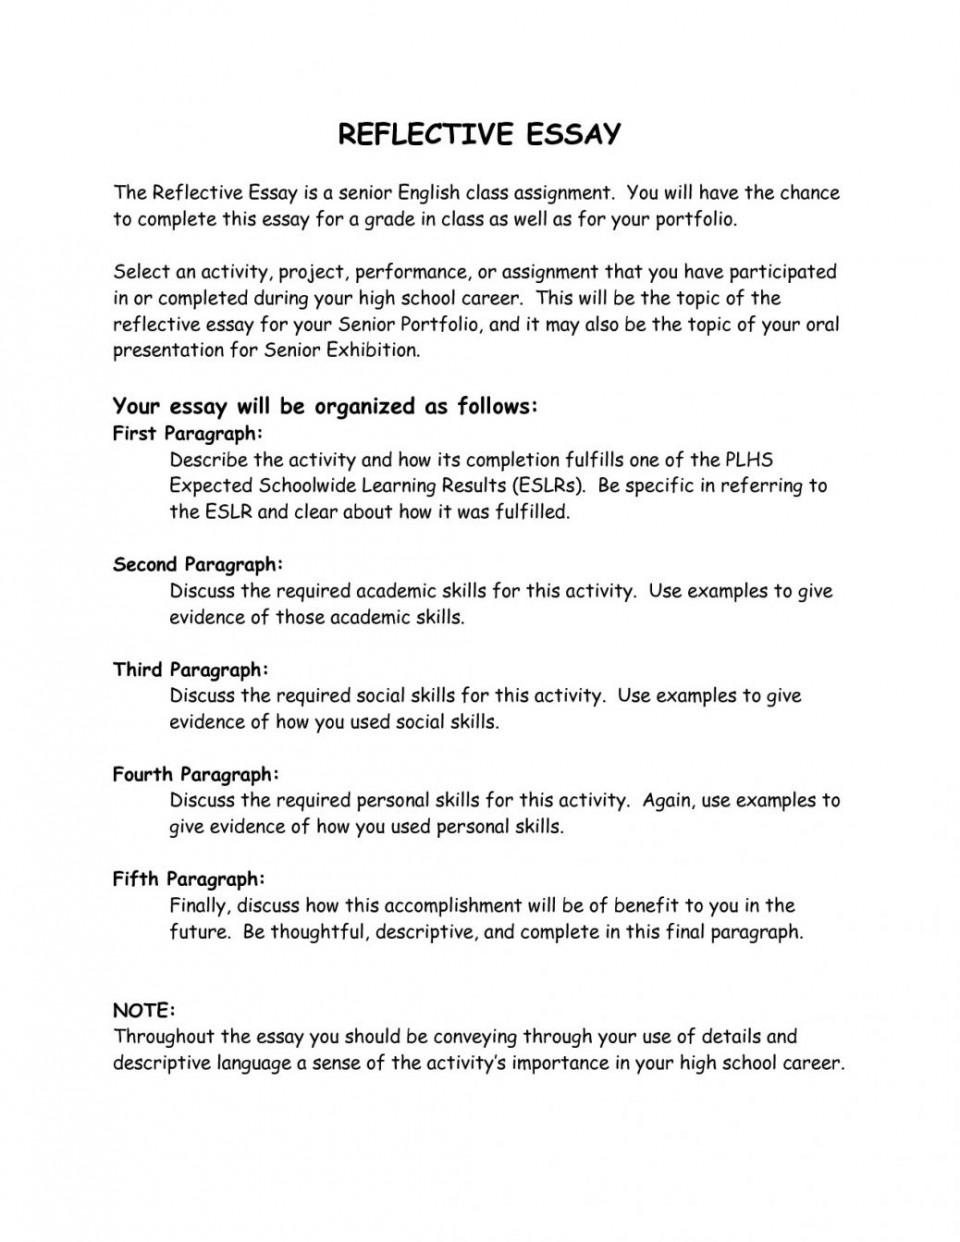 022 Paragraph Development Examples Essay Template Staggering Image Ideas Developing Thesis High School Researchr Writing Service Awesome 1038x1343 Cool Topics To Do On Impressive A Research Paper Interesting For Medical Of In Computer Science Economic 960